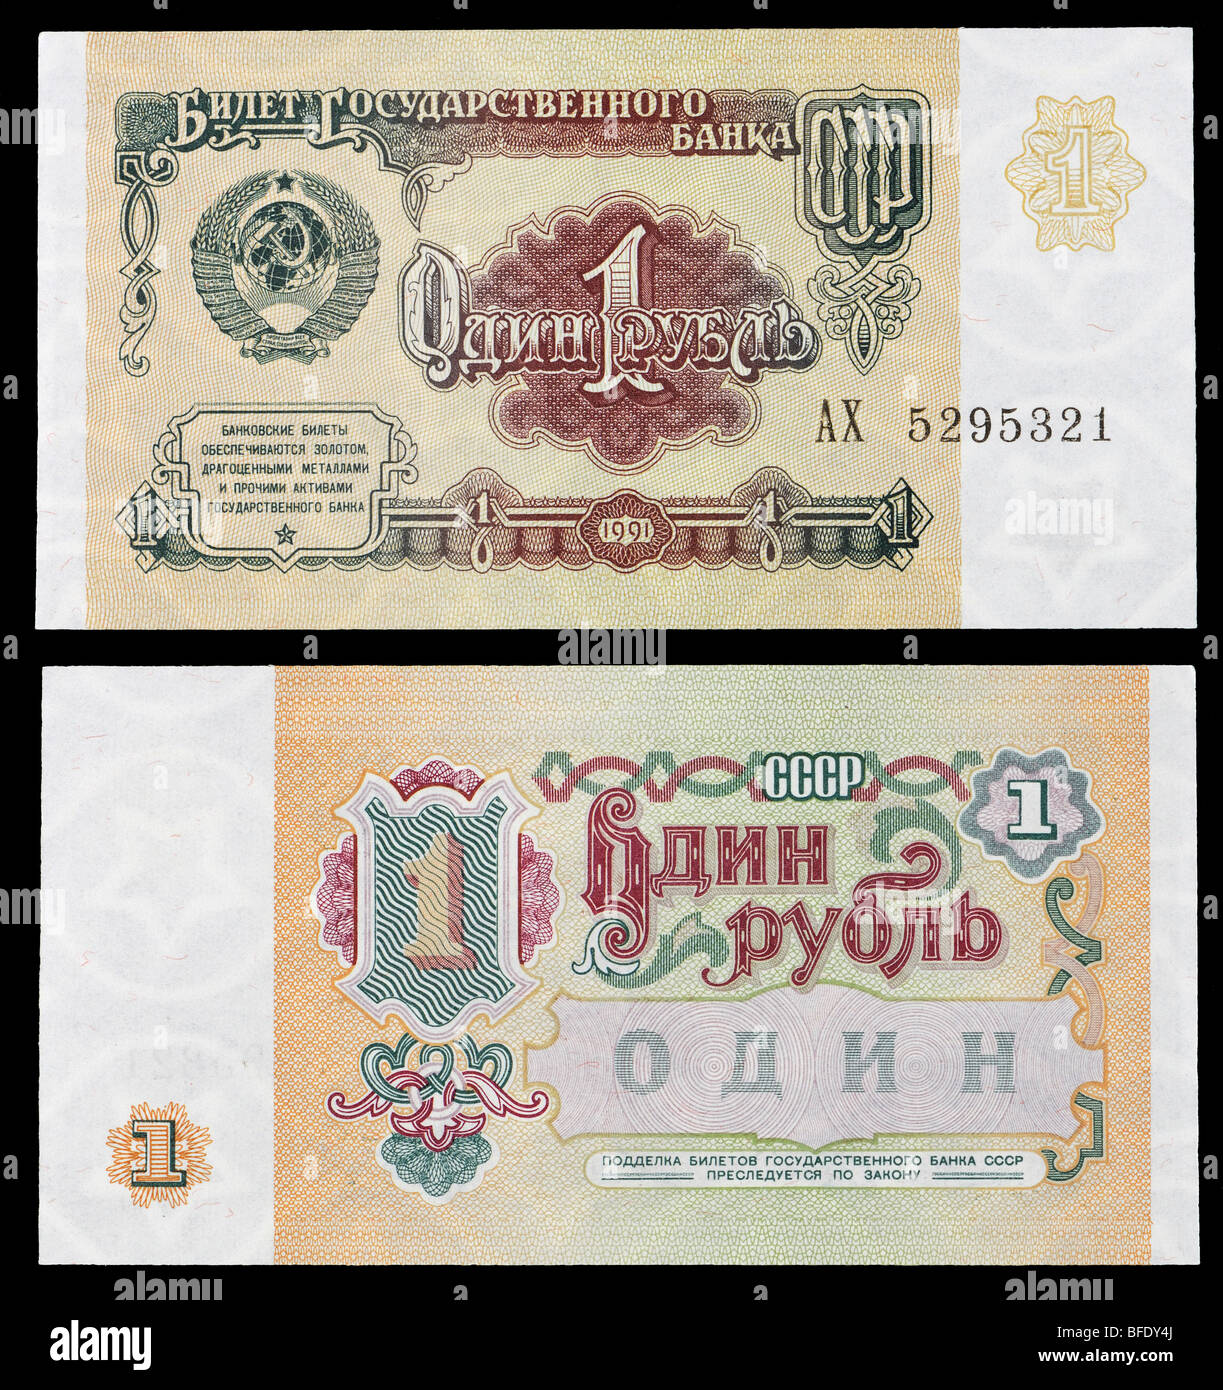 russia ruble banknote stock photos russia ruble banknote stock